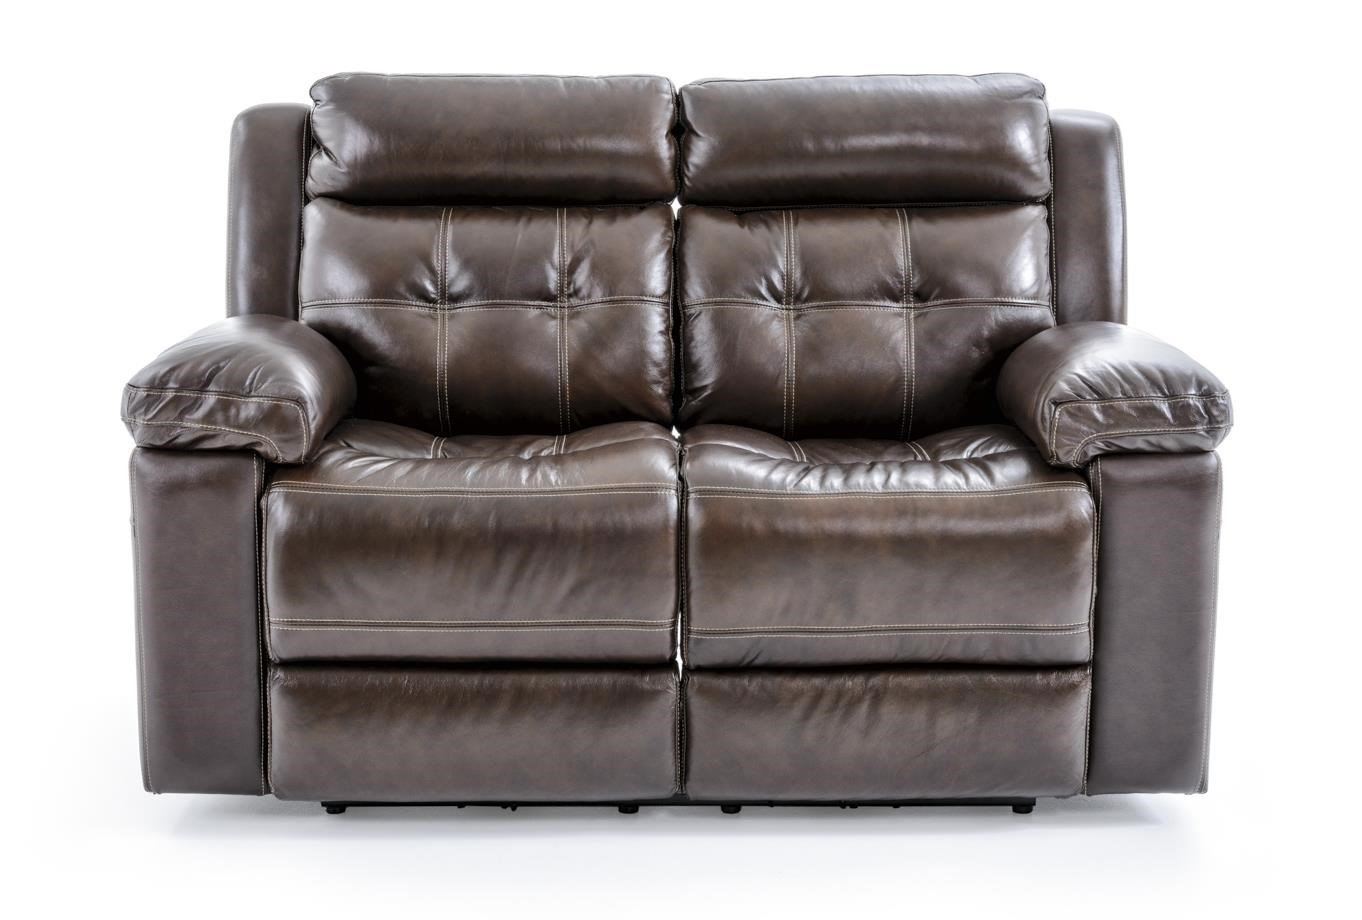 Futura Leather E1267 Electric Motion Loveseat - Item Number: E1267-318 1148H ARCH DAVEN